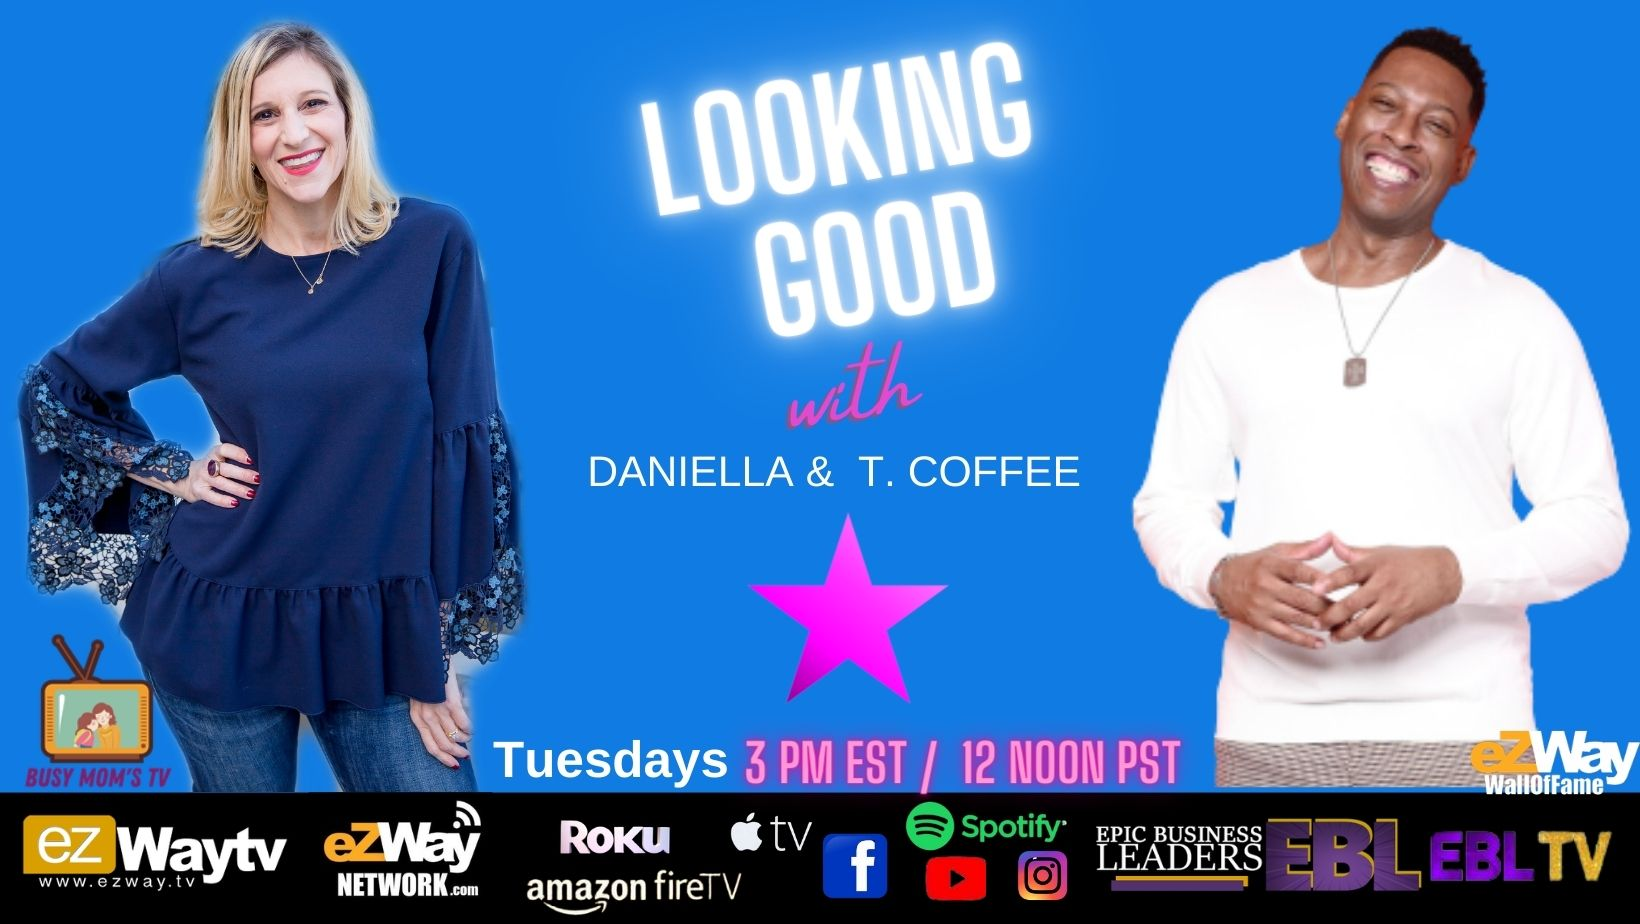 You saw it First on eZWay Network Looking Good with Daniella & T. Coffee